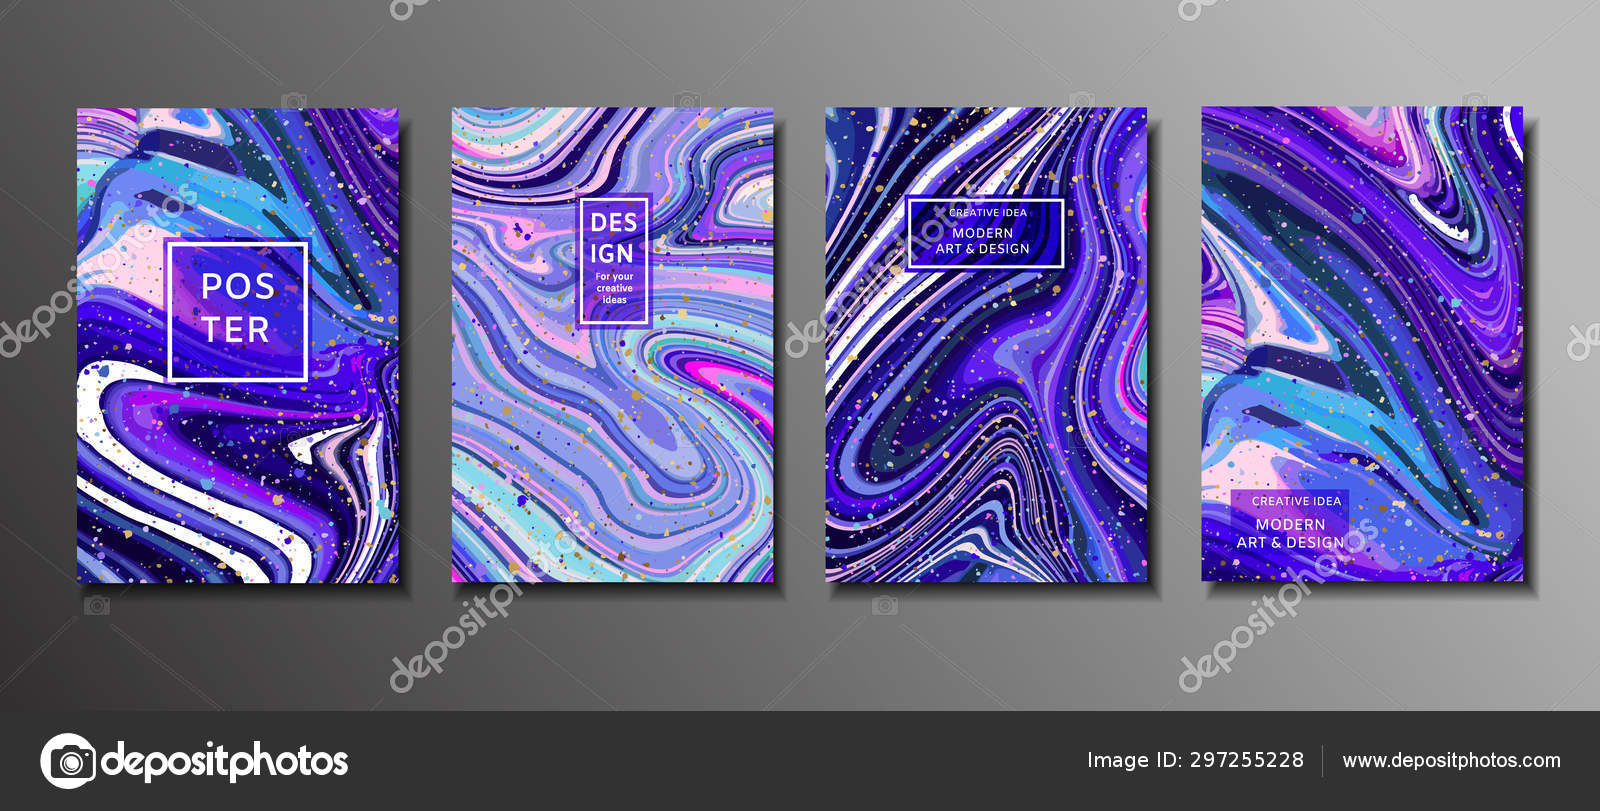 Abstract Painting Background For Wallpapers Posters Cards Invitations Websites Modern Painting Handmade Background Marble Effect Painting Vector Stock Vector C Artemisia1508 Gmail Com 297255228